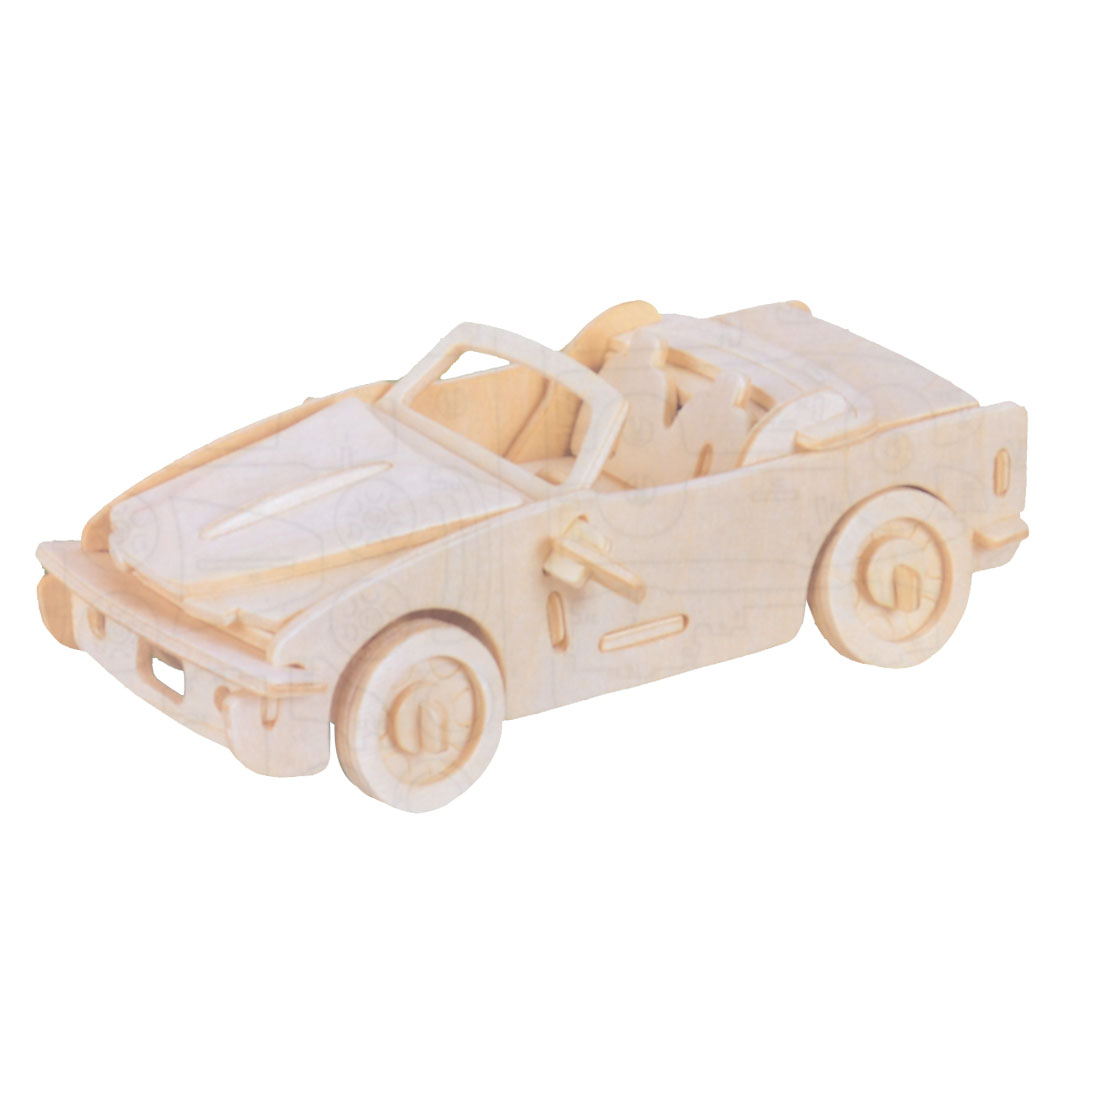 DIY Wooden 3D Puzzle Educational Playing Toy Car Model Gift by Unique-Bargains